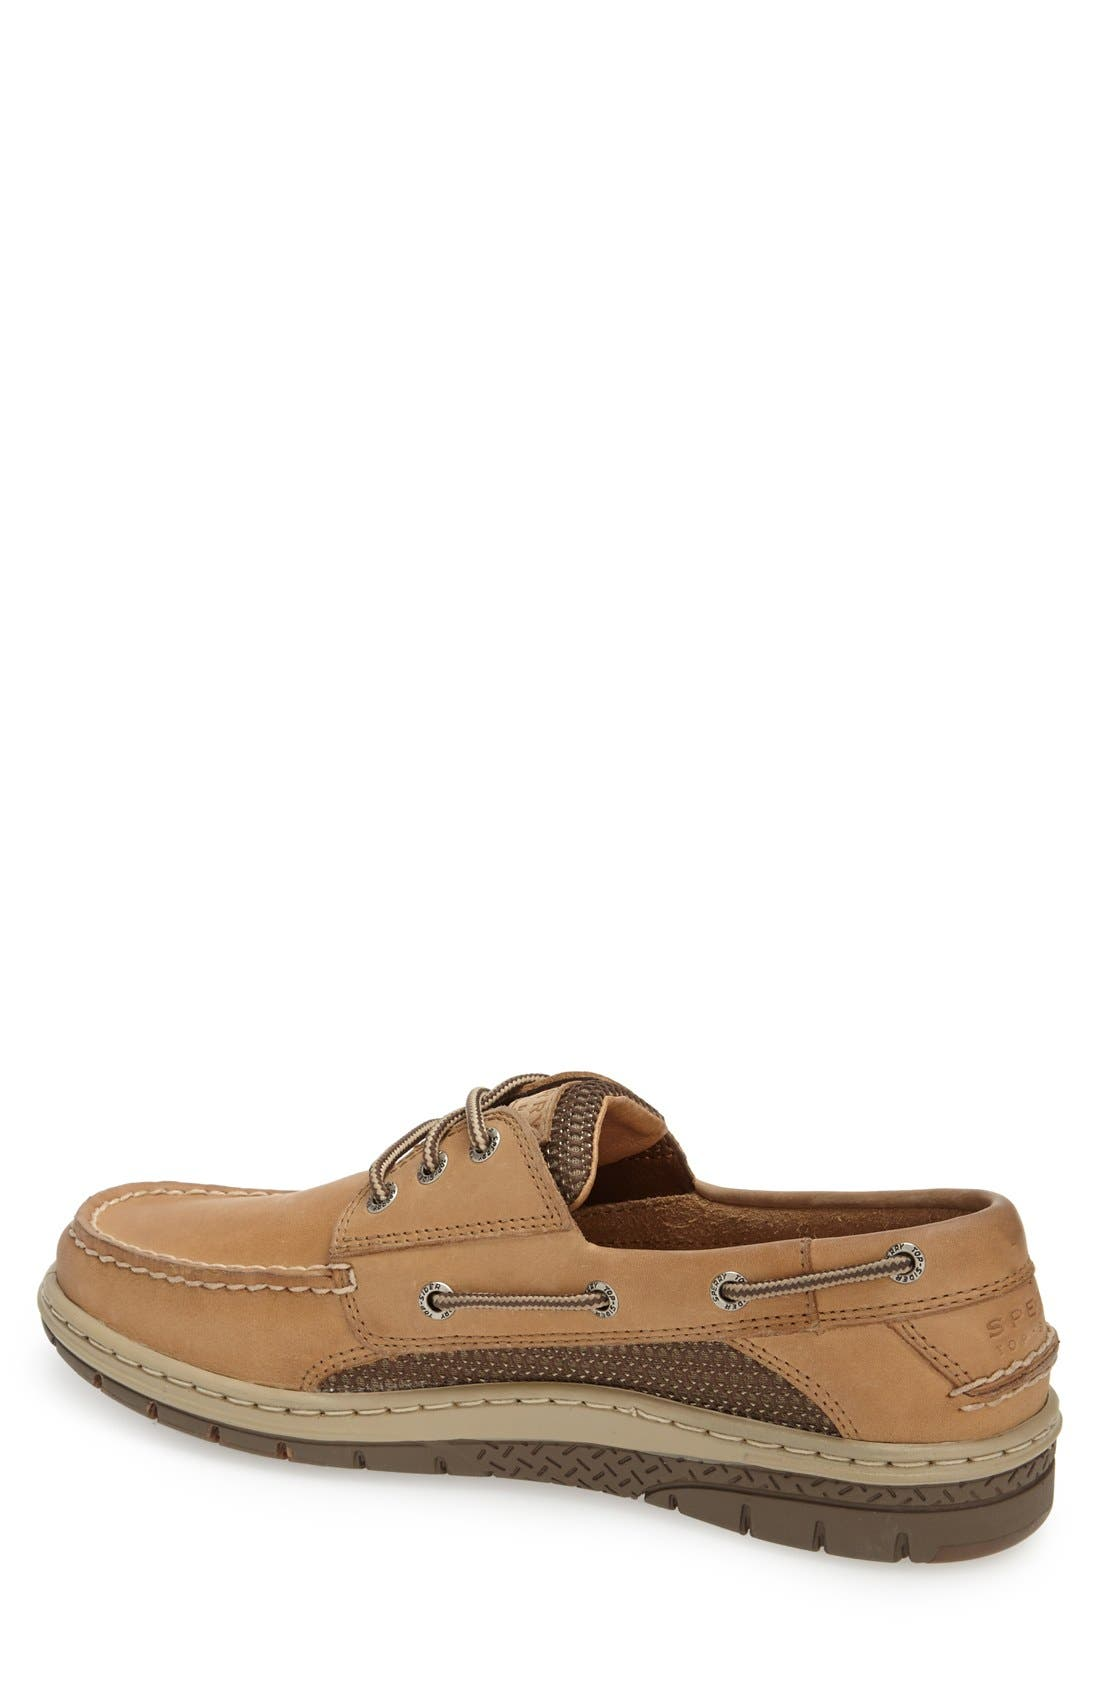 'Billfish Ultralite' Boat Shoe,                             Alternate thumbnail 74, color,